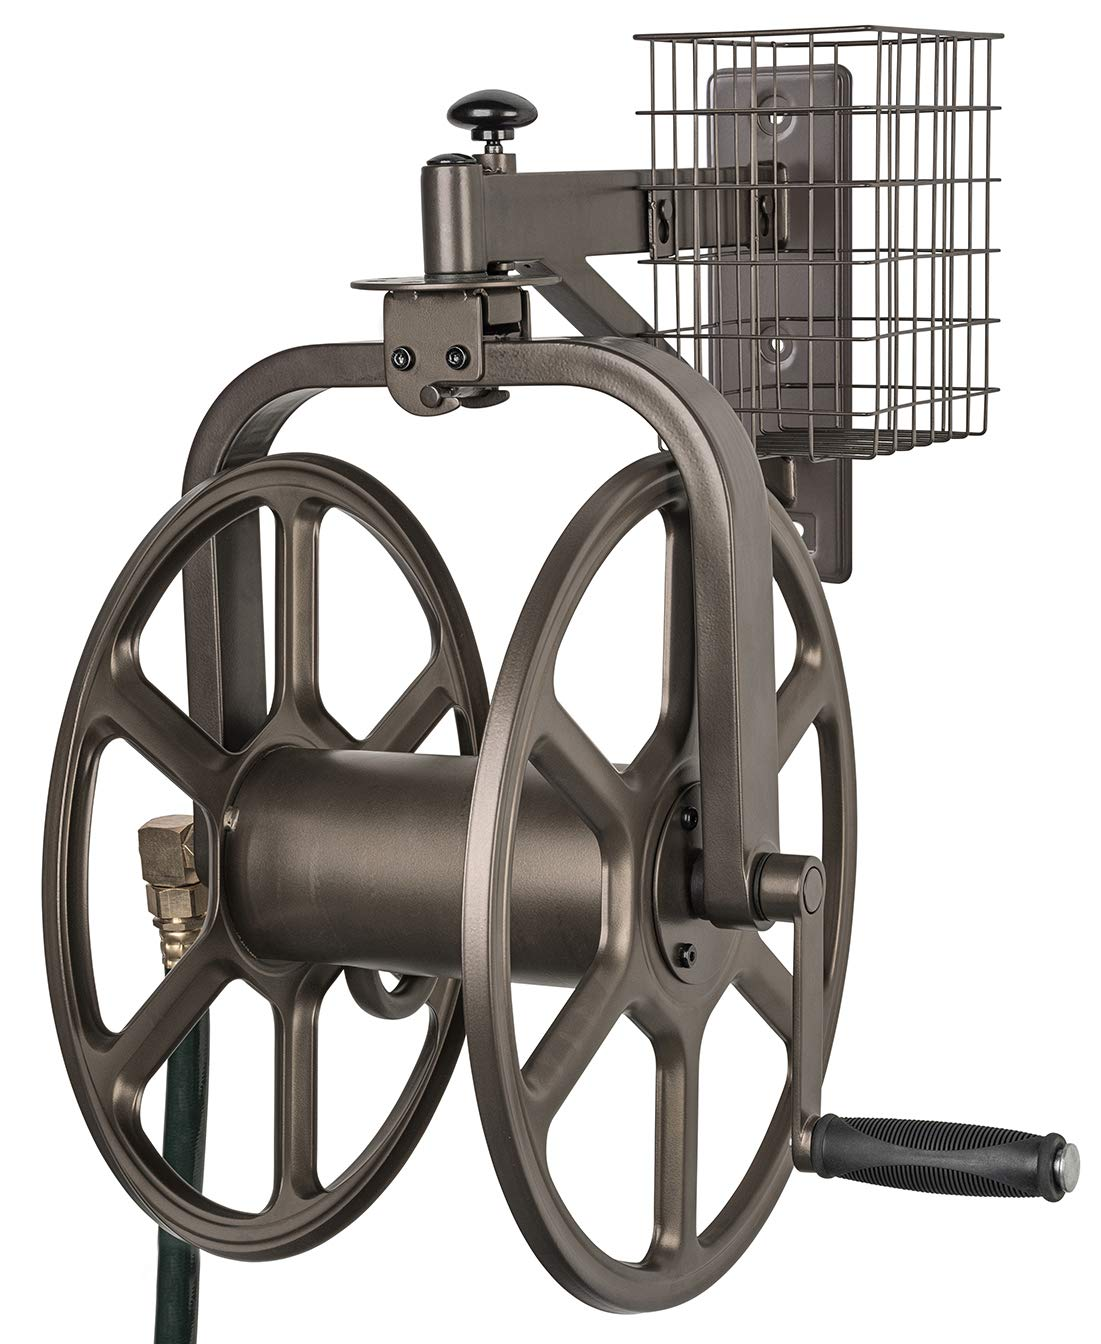 Liberty Garden 712 Single Arm Navigator Multi-Directional Garden Hose Reel, Holds 100-Feet of, 5/8-Inch, Bronze by Liberty Garden Products